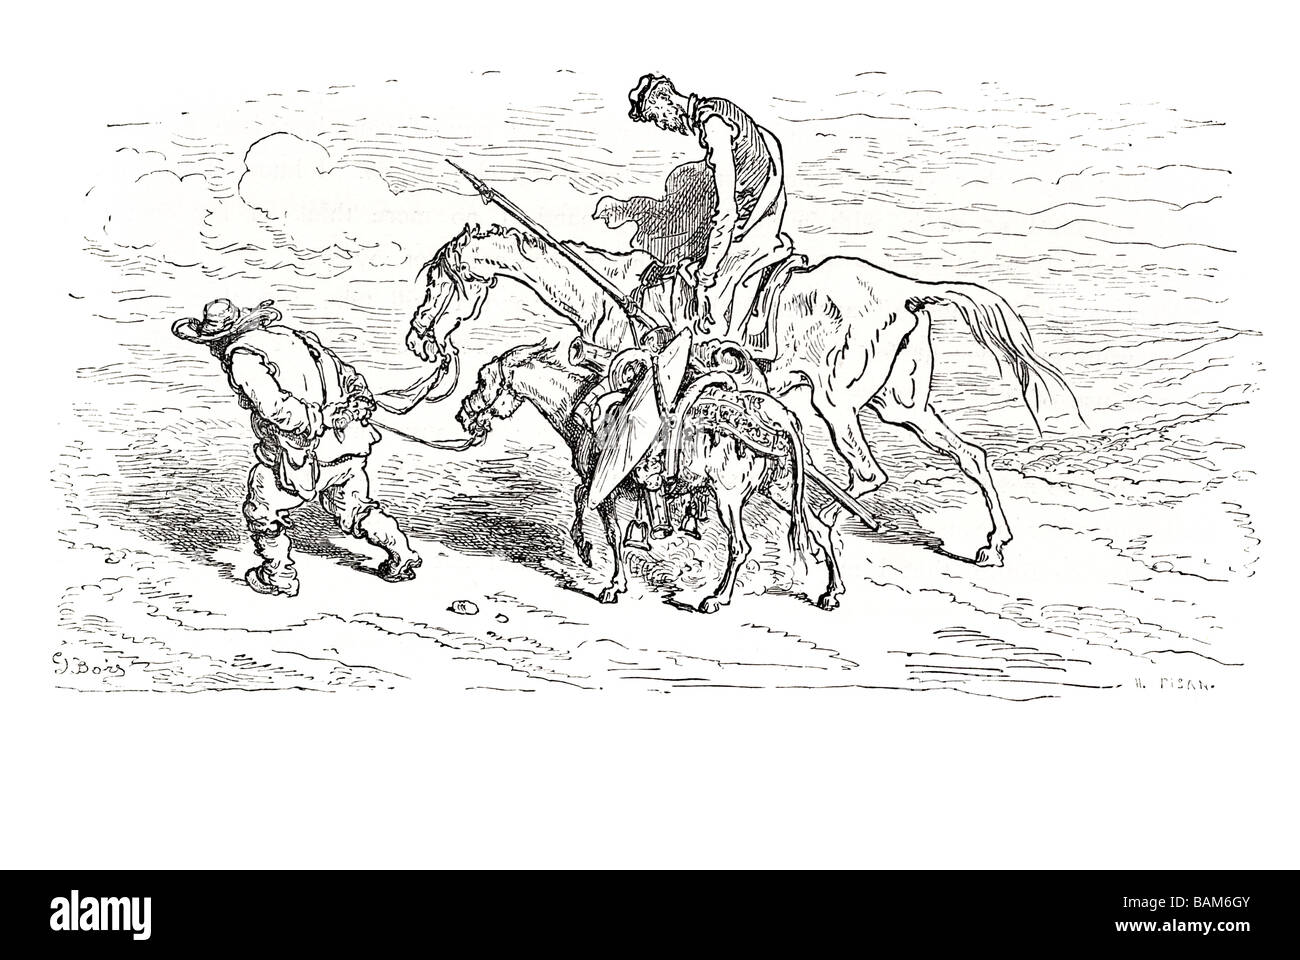 chapter LXXI what happened to don quixote and his squire on their way home 71 seventy one Don quixote spanish novel Stock Photo